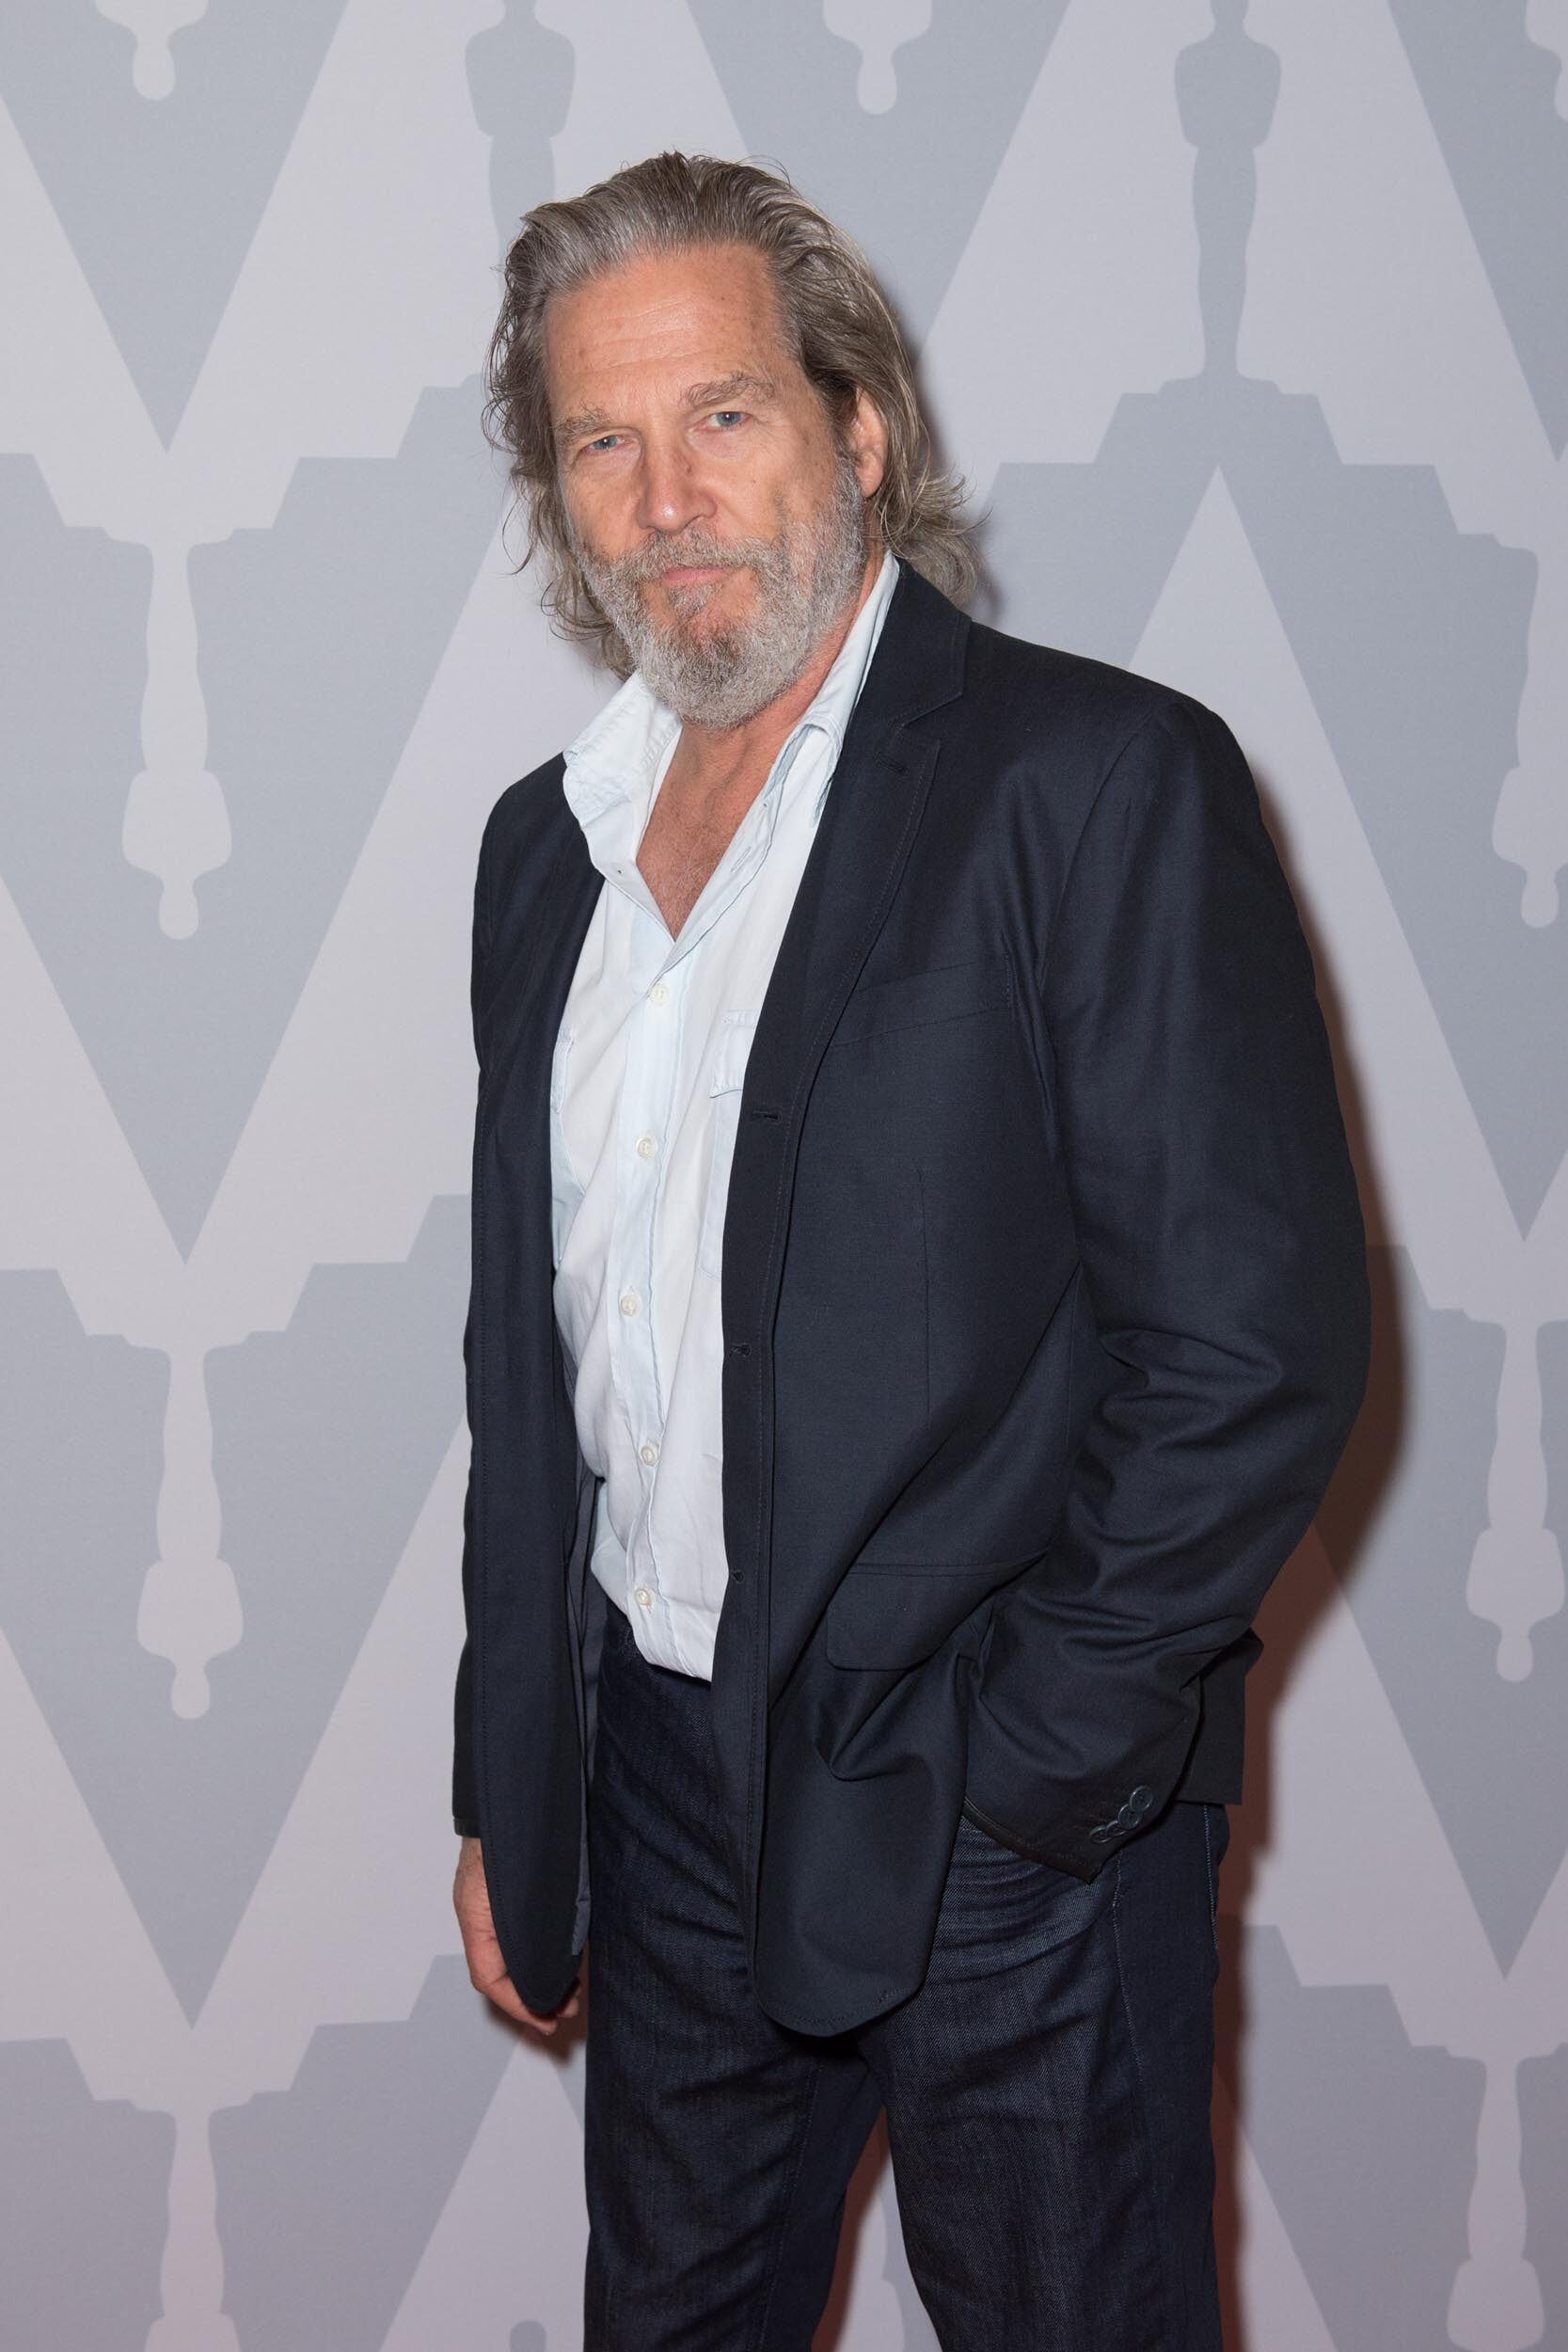 Jeff Bridges prior to the event.